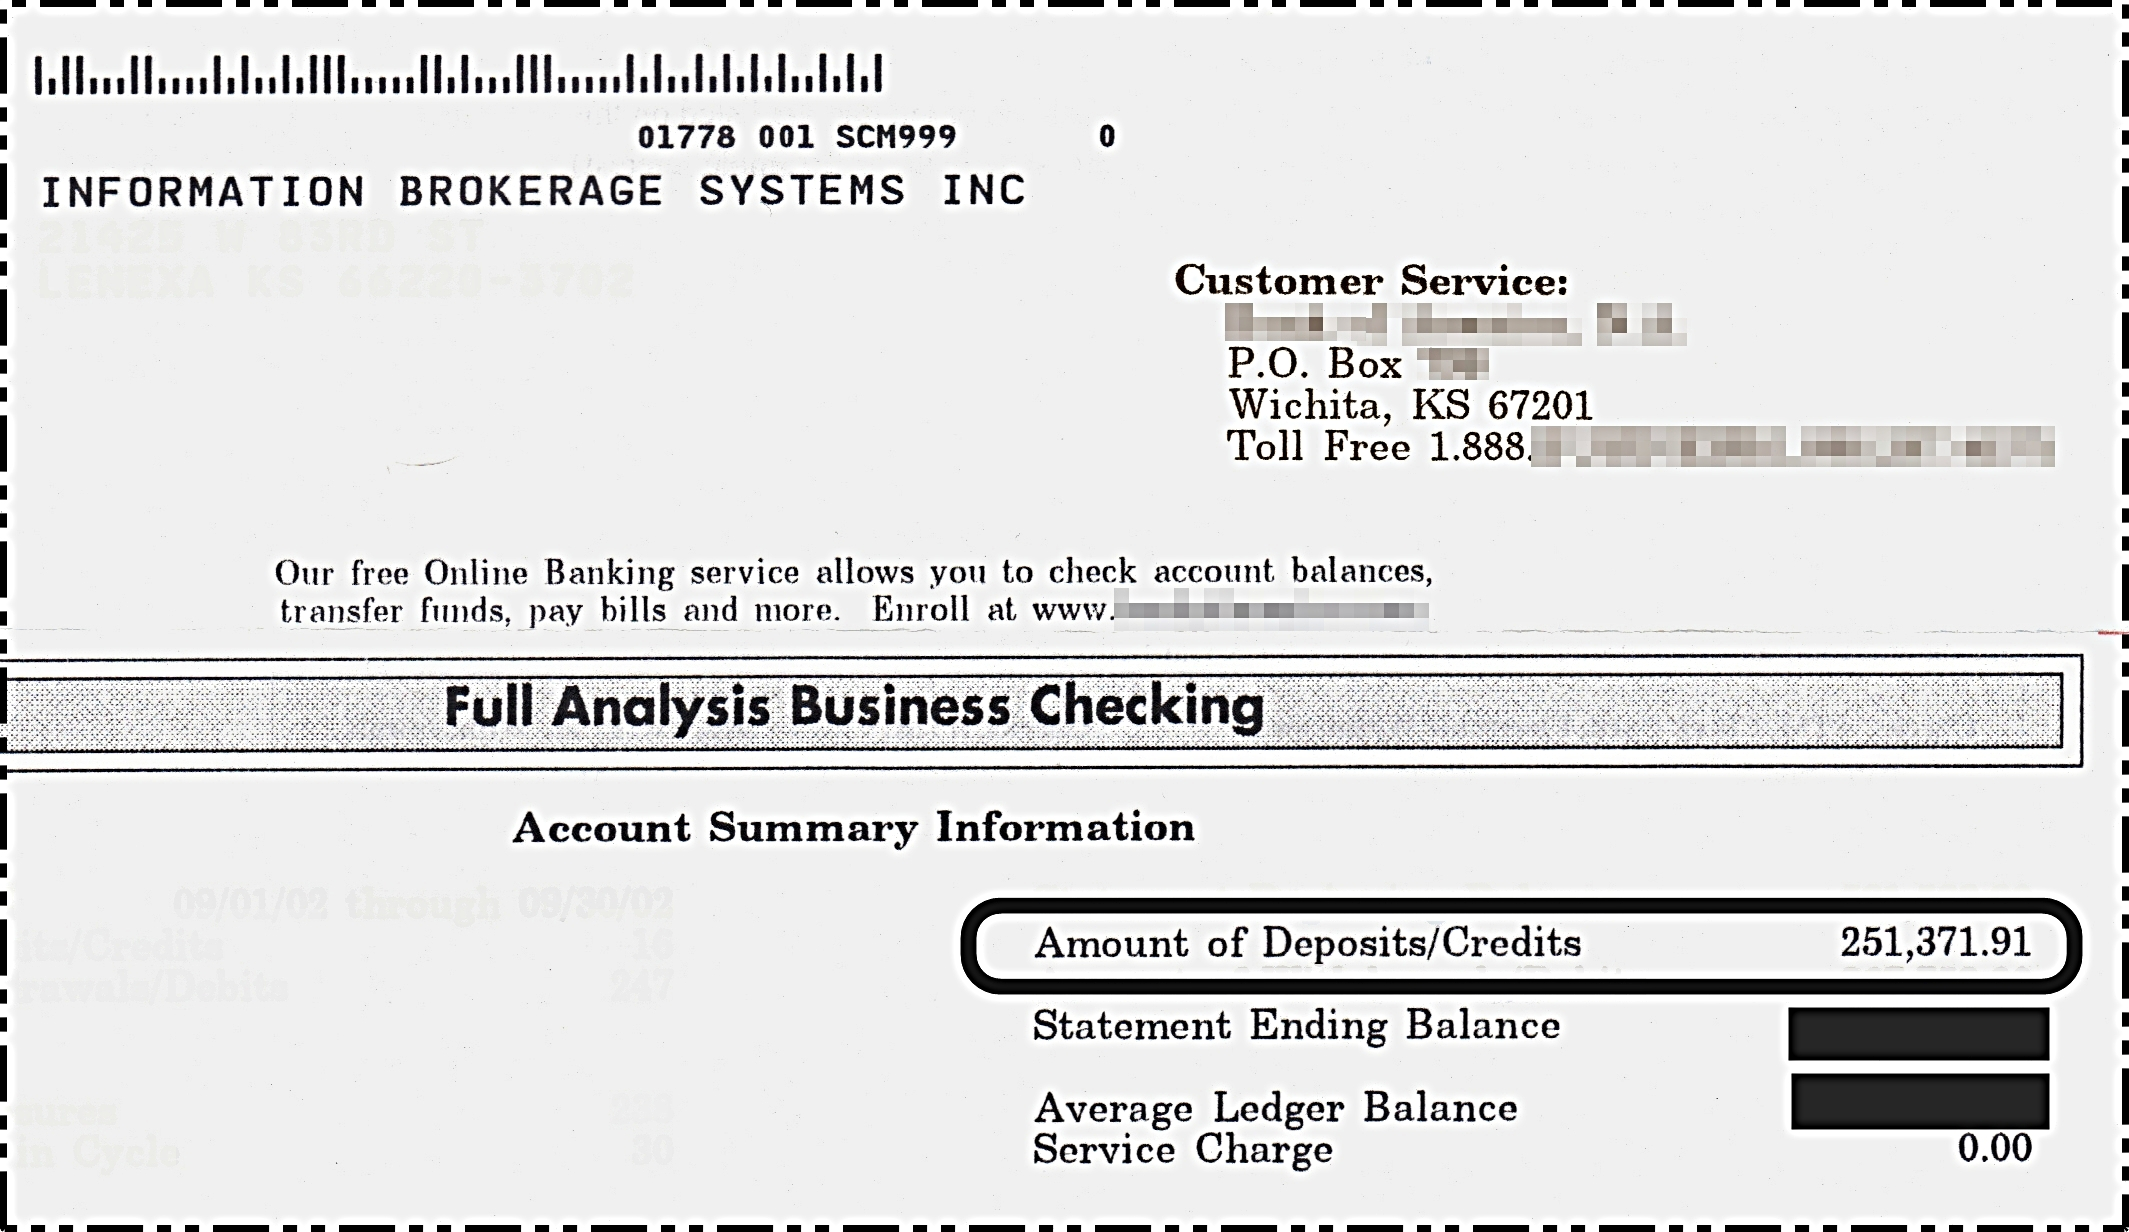 $251,371.91 Bank Statement